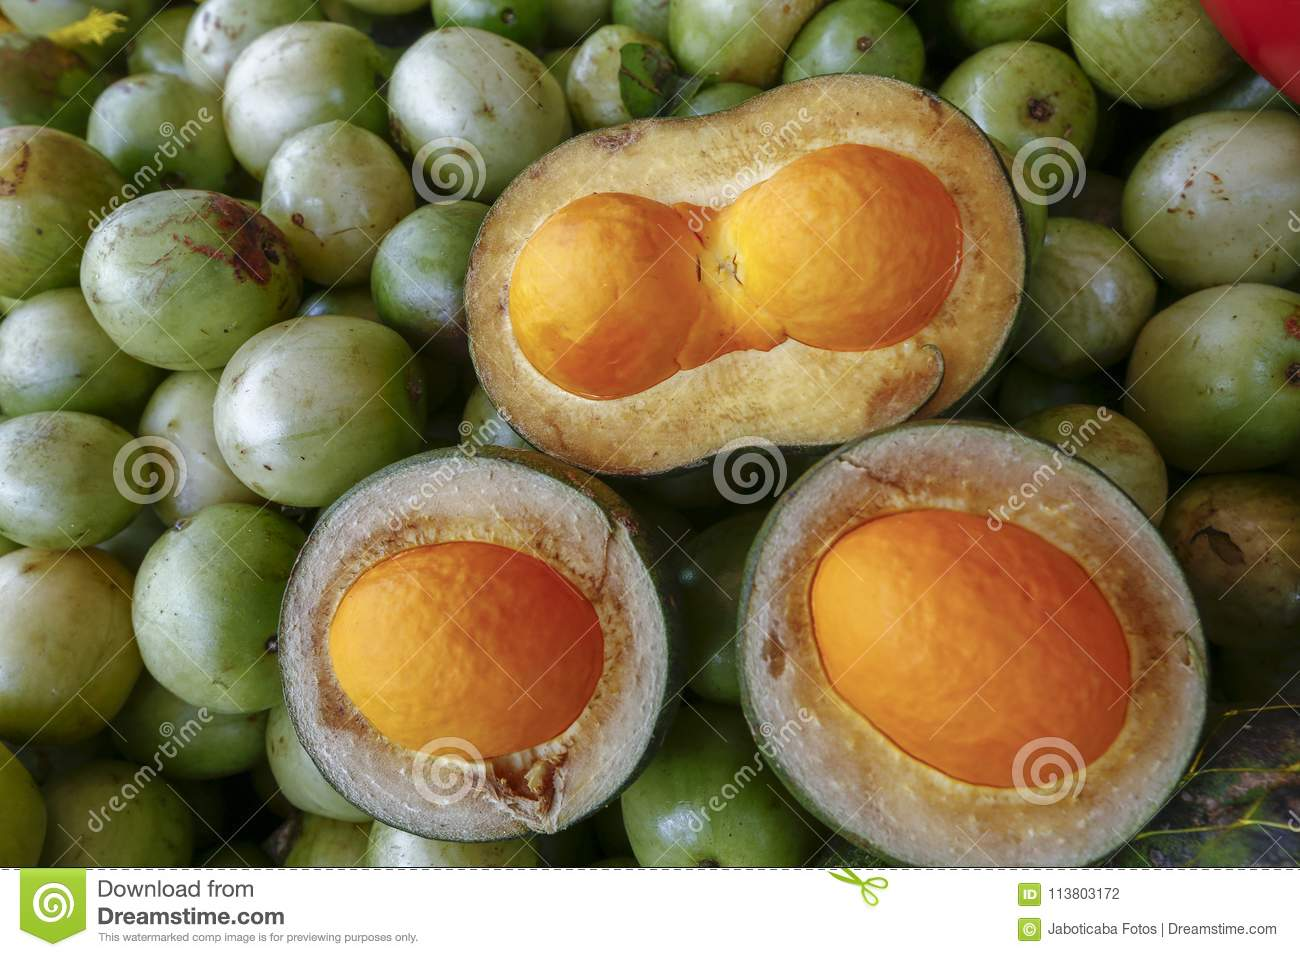 Pequi In Street Market Stall Stock Photo - Image of